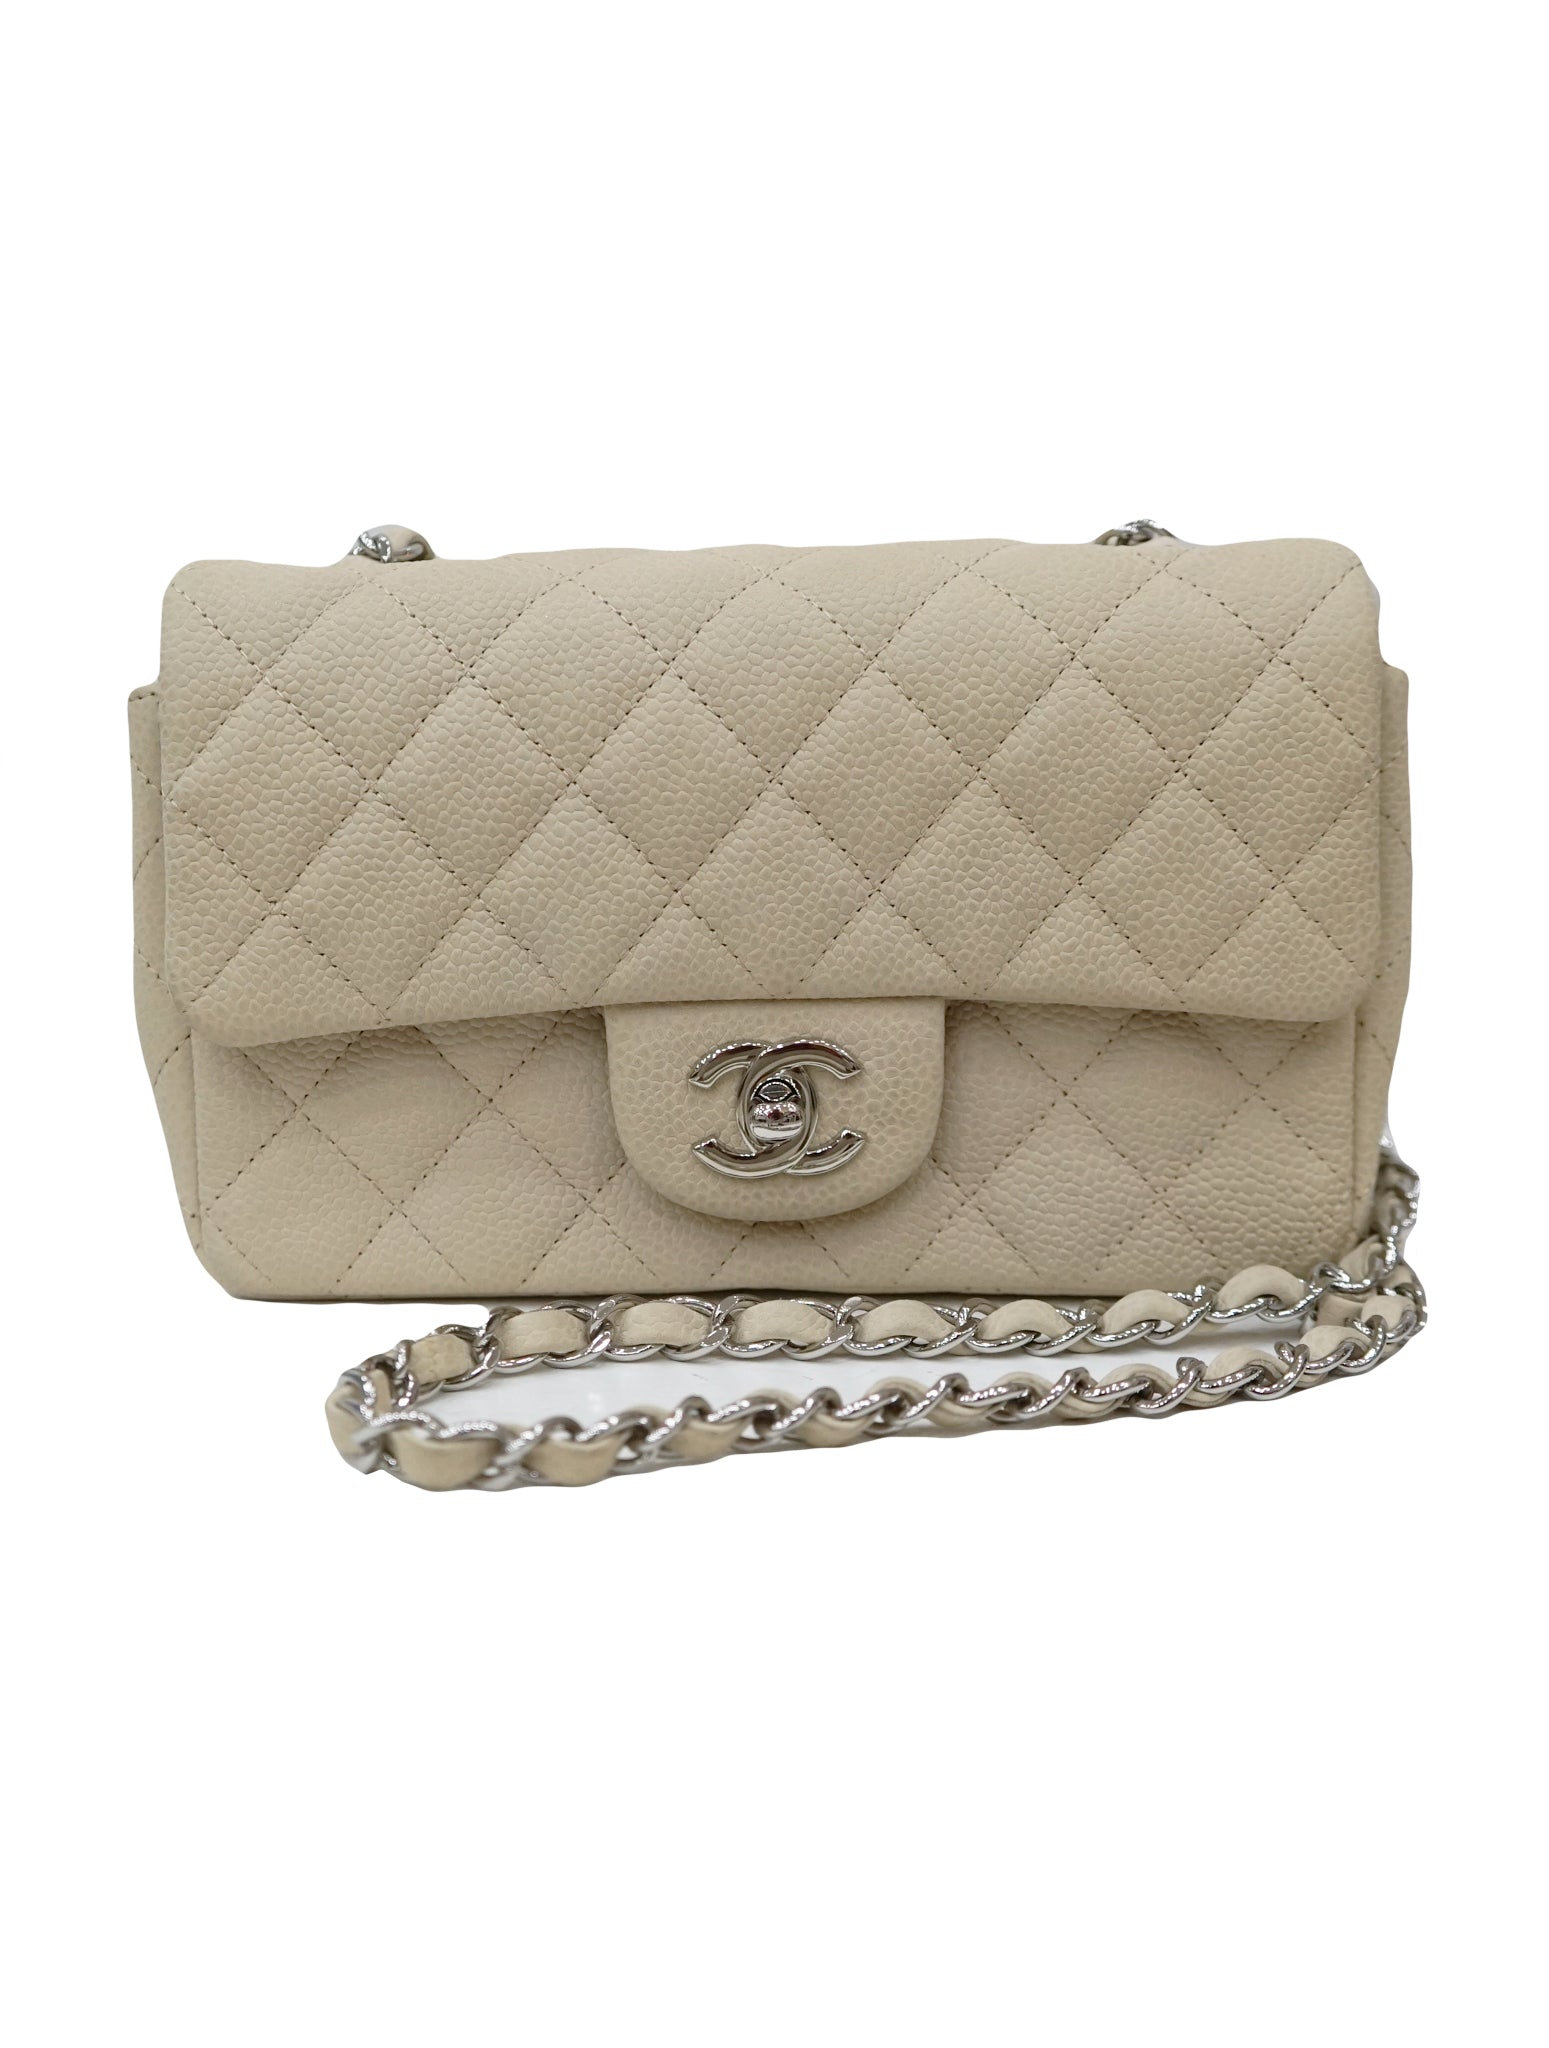 CAVIAR QUILTED LEATHER FLAP BAG